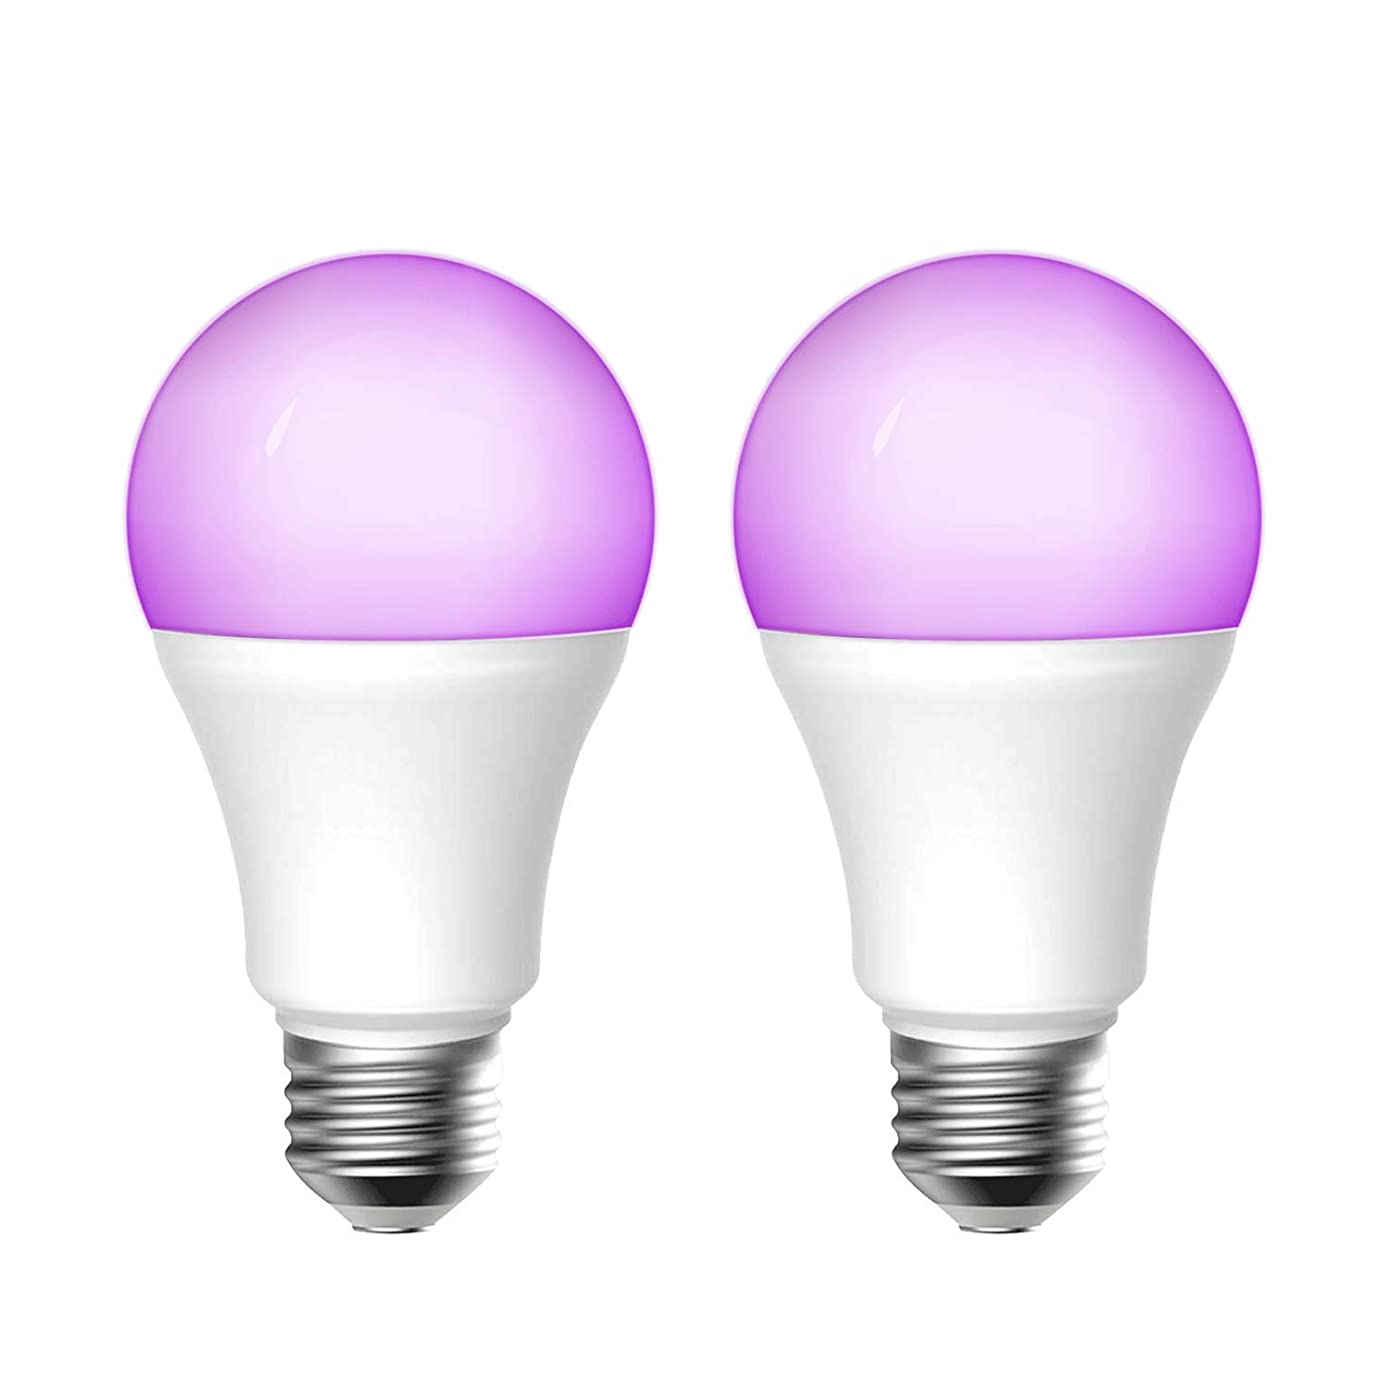 meross Smart Wi-Fi LED Bulb, Multiple Colors, RGB, 60W Equivalent, Compatible with Alexa, Google Assistant and IFTTT, E26 Light Bulb, No Hub Required (2 Pack)